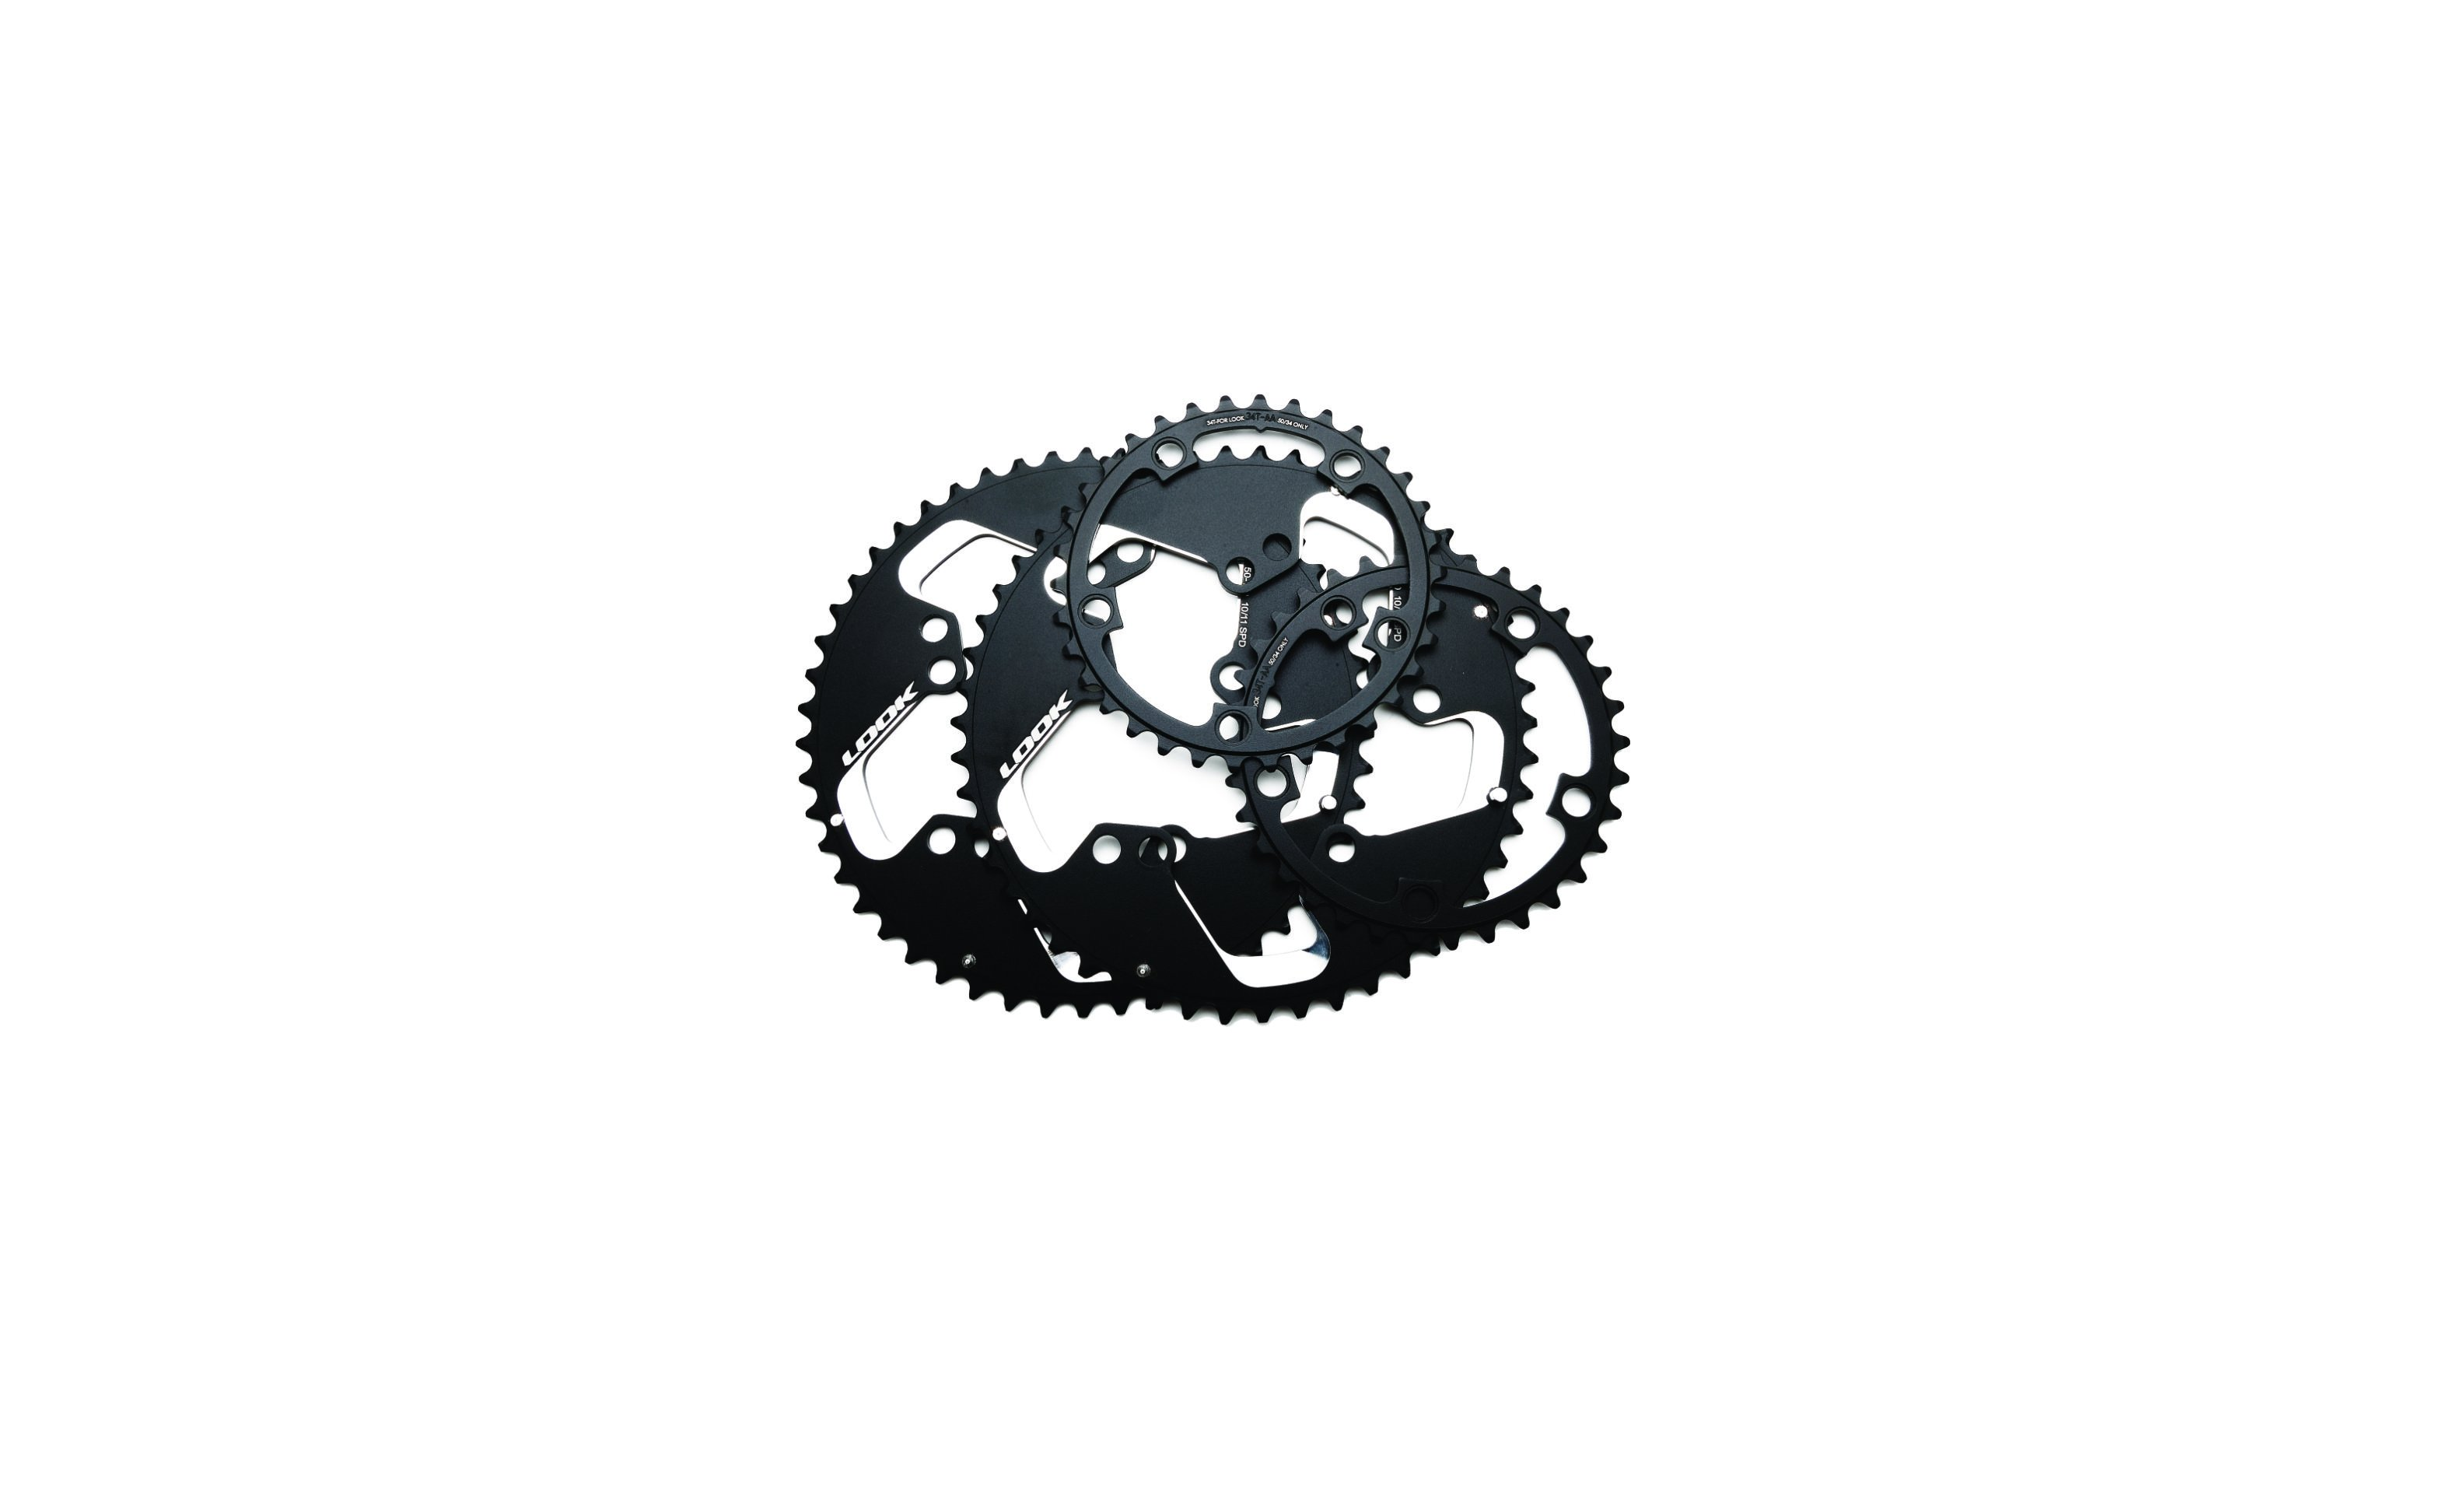 zed-2-chainrings